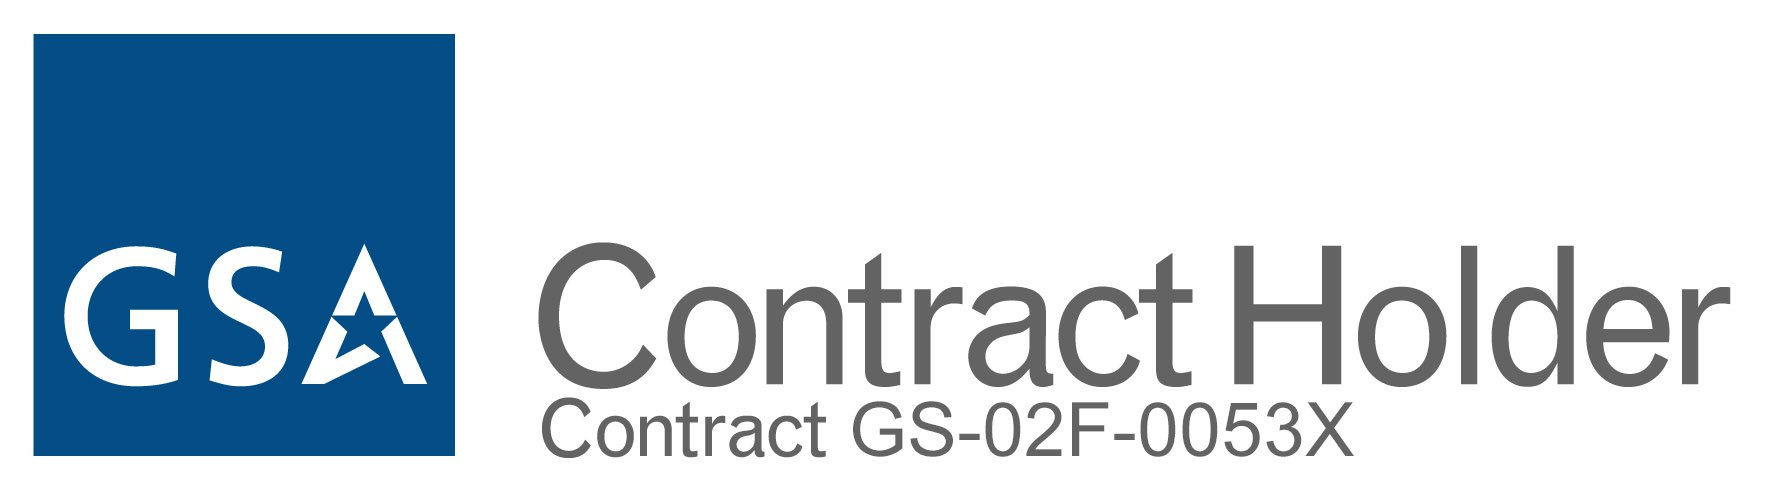 gsa contract holder.  contract GS-02F-0053X